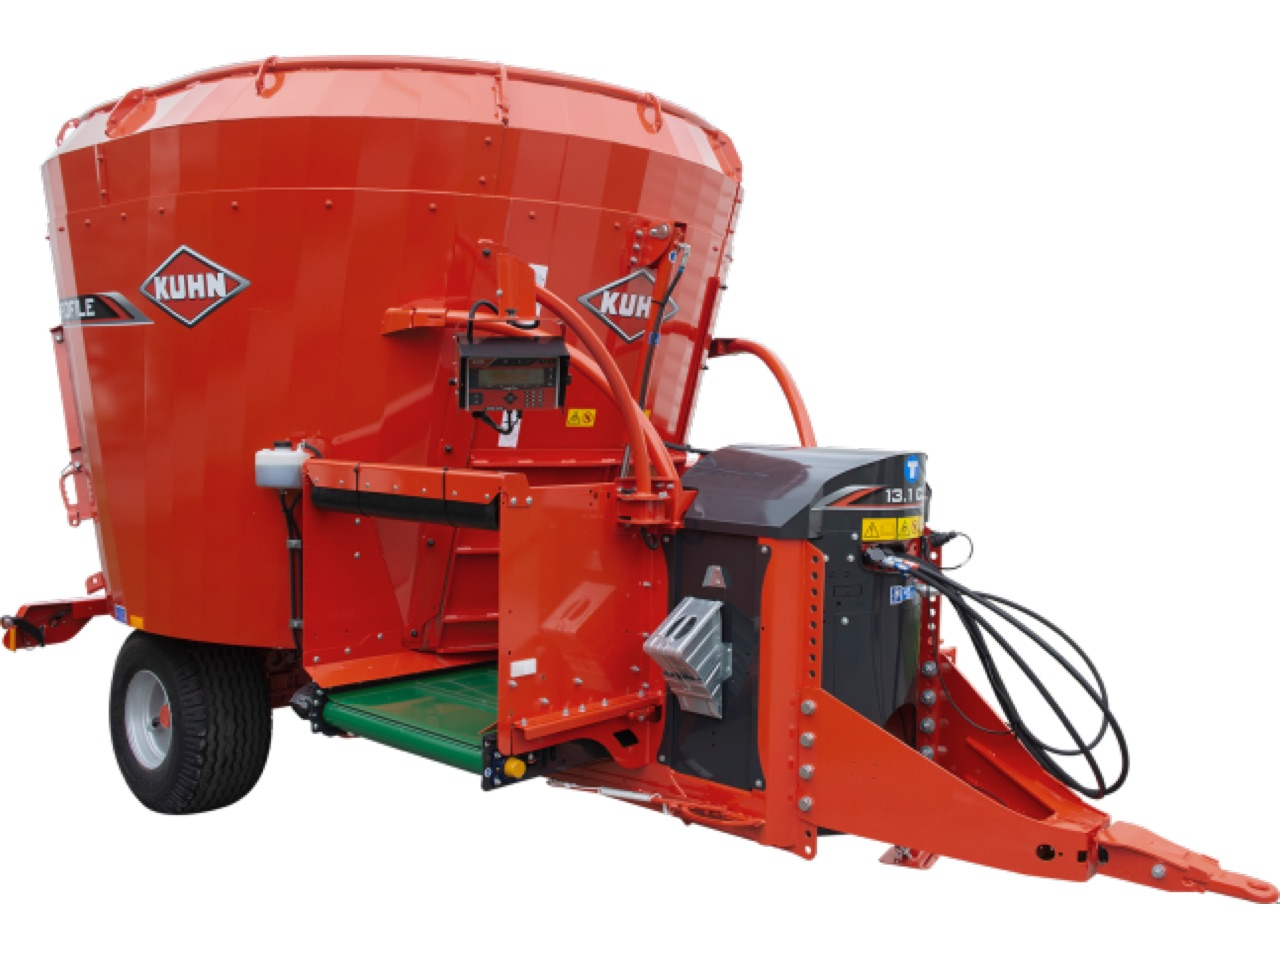 Kuhn Profile 1 CL Profile 11.1 CL